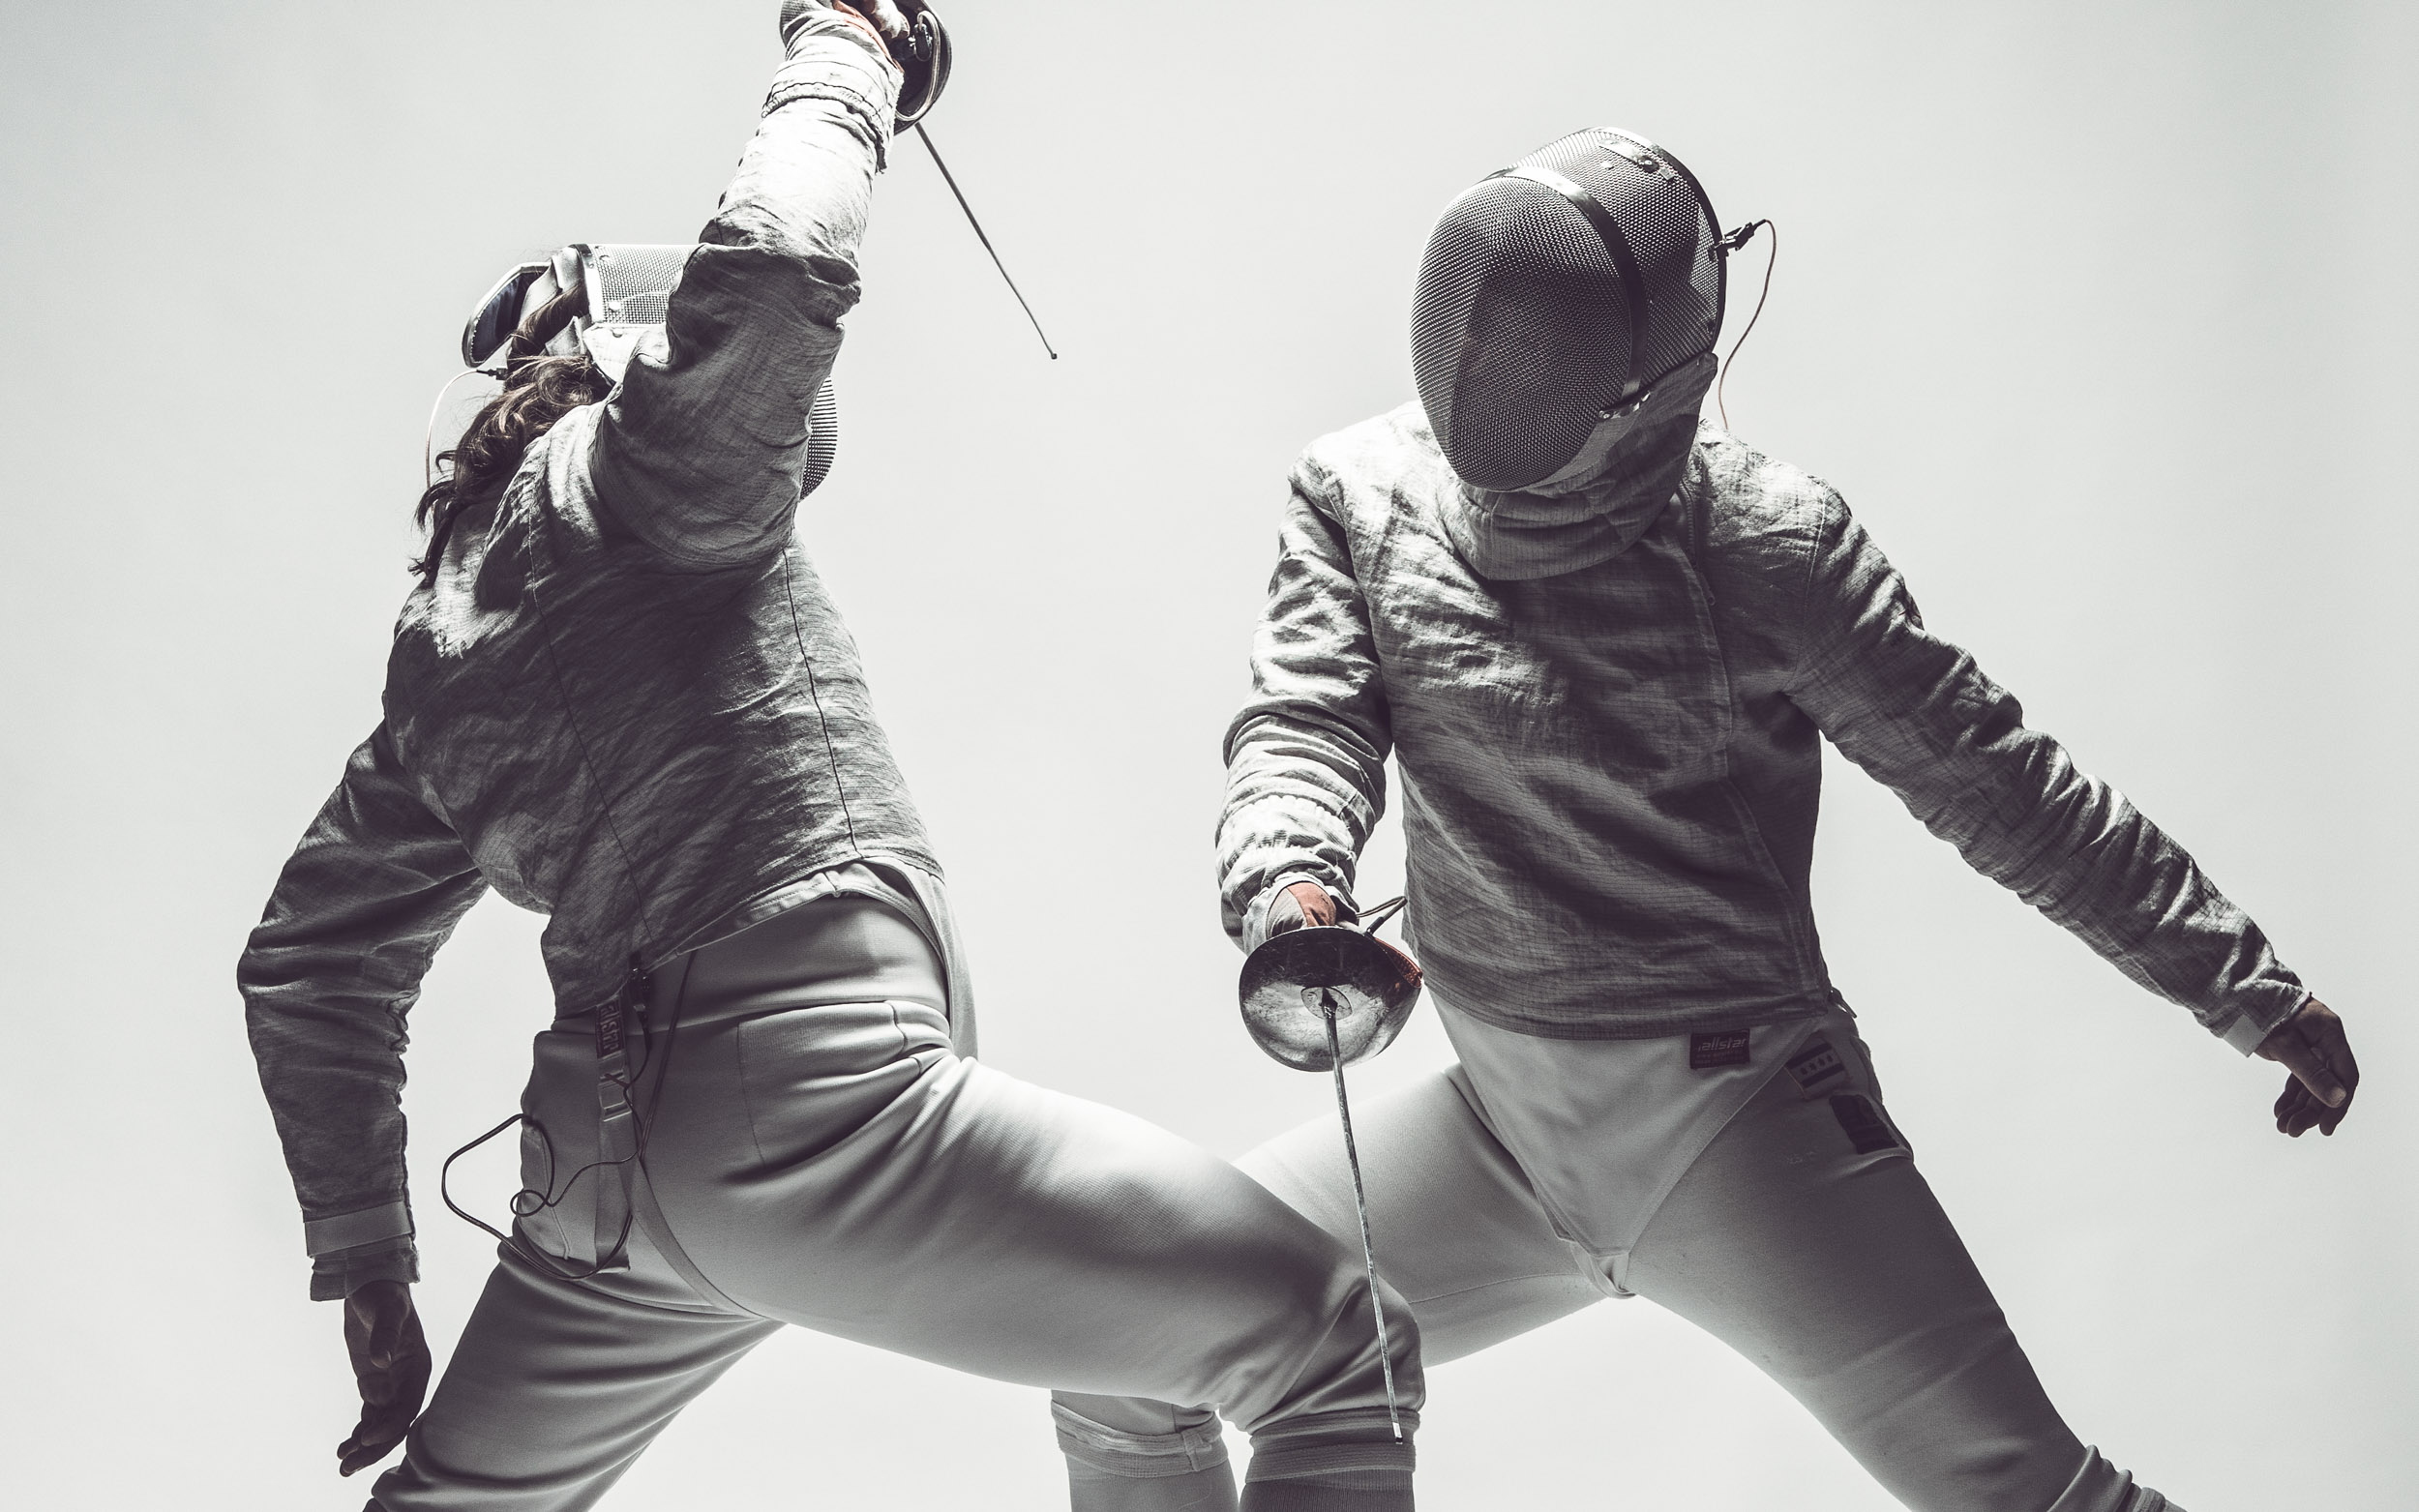 Two fencers in white strike a dramatic pose during a match